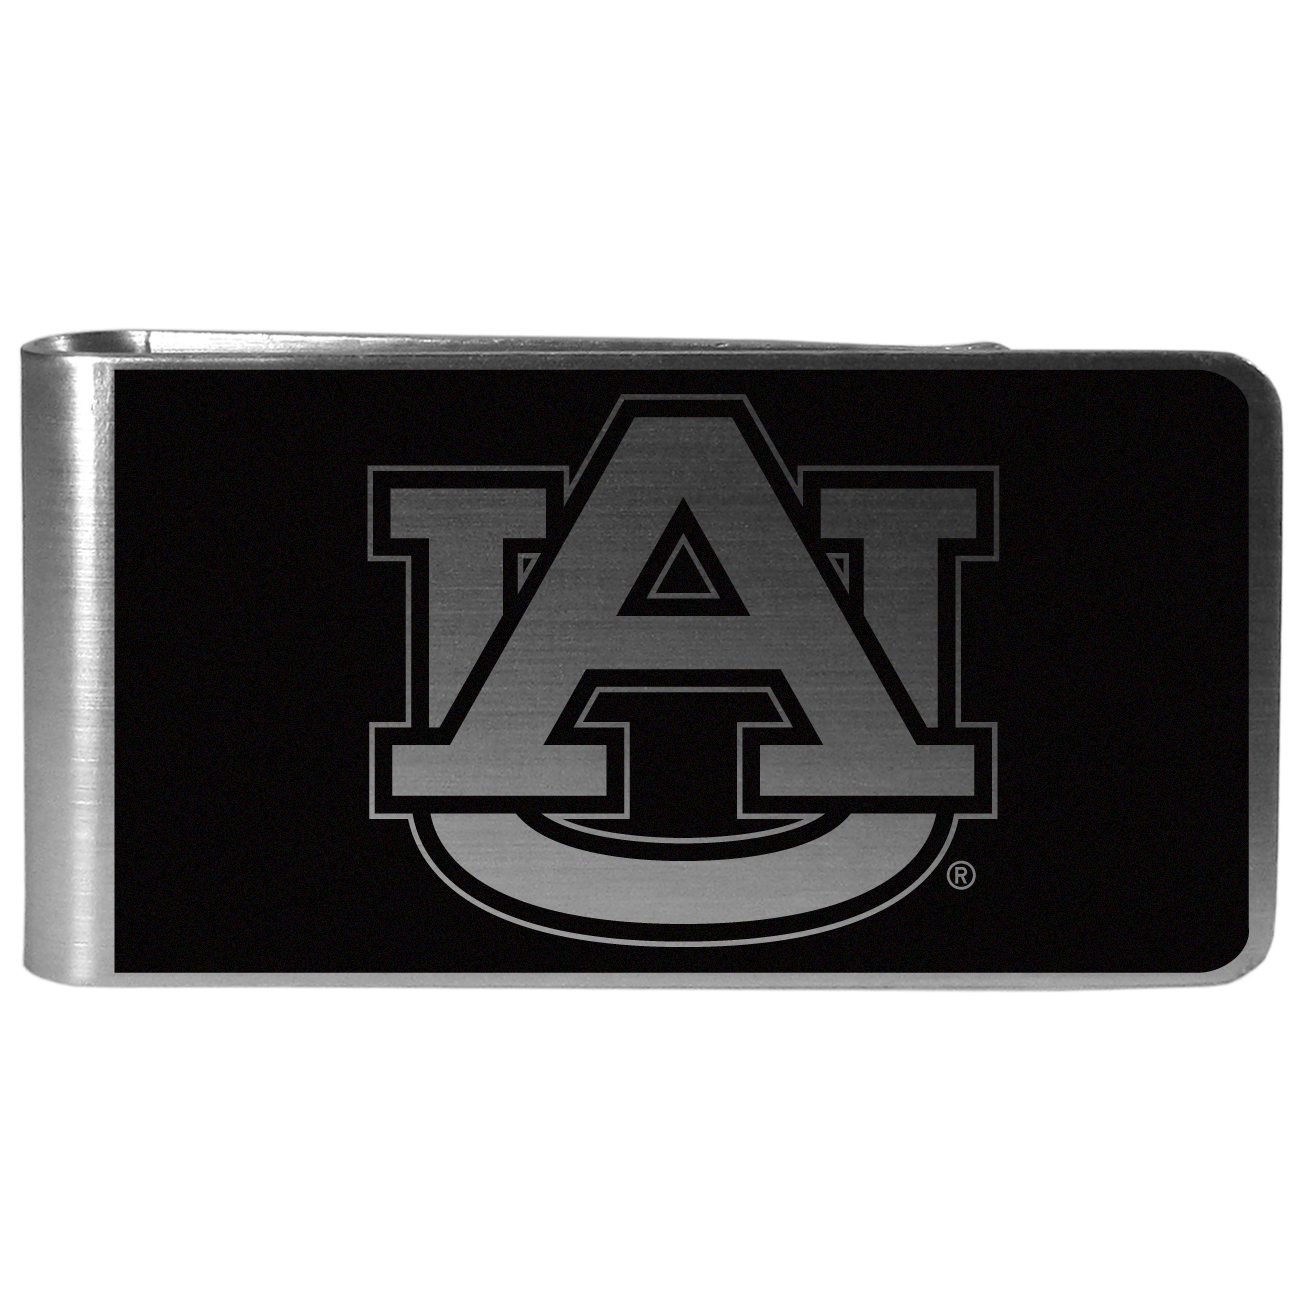 Auburn Tigers Black and Steel Money Clip - Our monochromatic steel money clips have a classic style and superior quality. The strong, steel clip has a black overlay of the Auburn Tigers logo over the brushed metal finish creating a stylish men's fashion accessory that would make any fan proud.